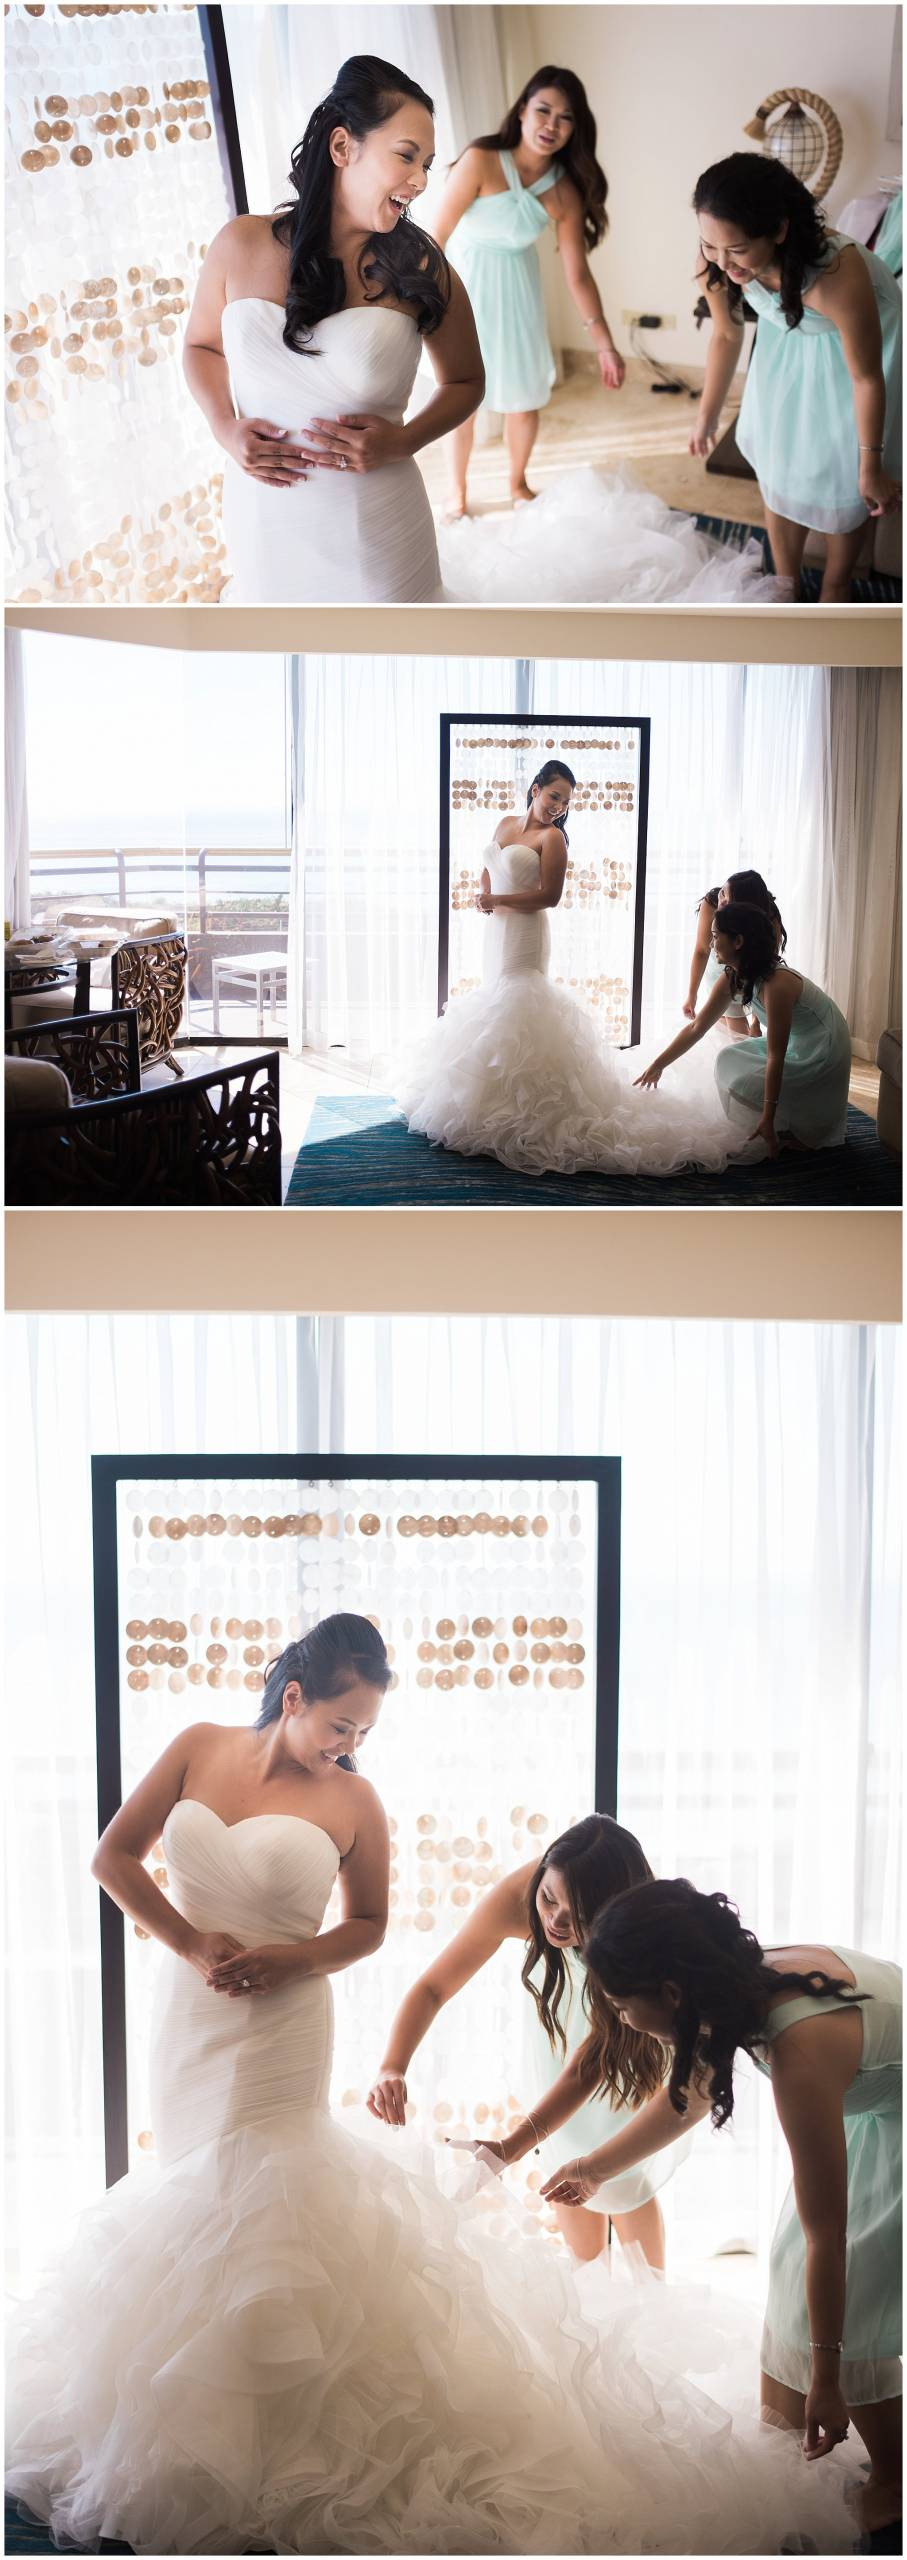 Ha & Allen Wedding Third Element Photography & Cinema Pismo Beach Cliffs Resort Central Coast Hybrid Film Wedding Photographer_0015